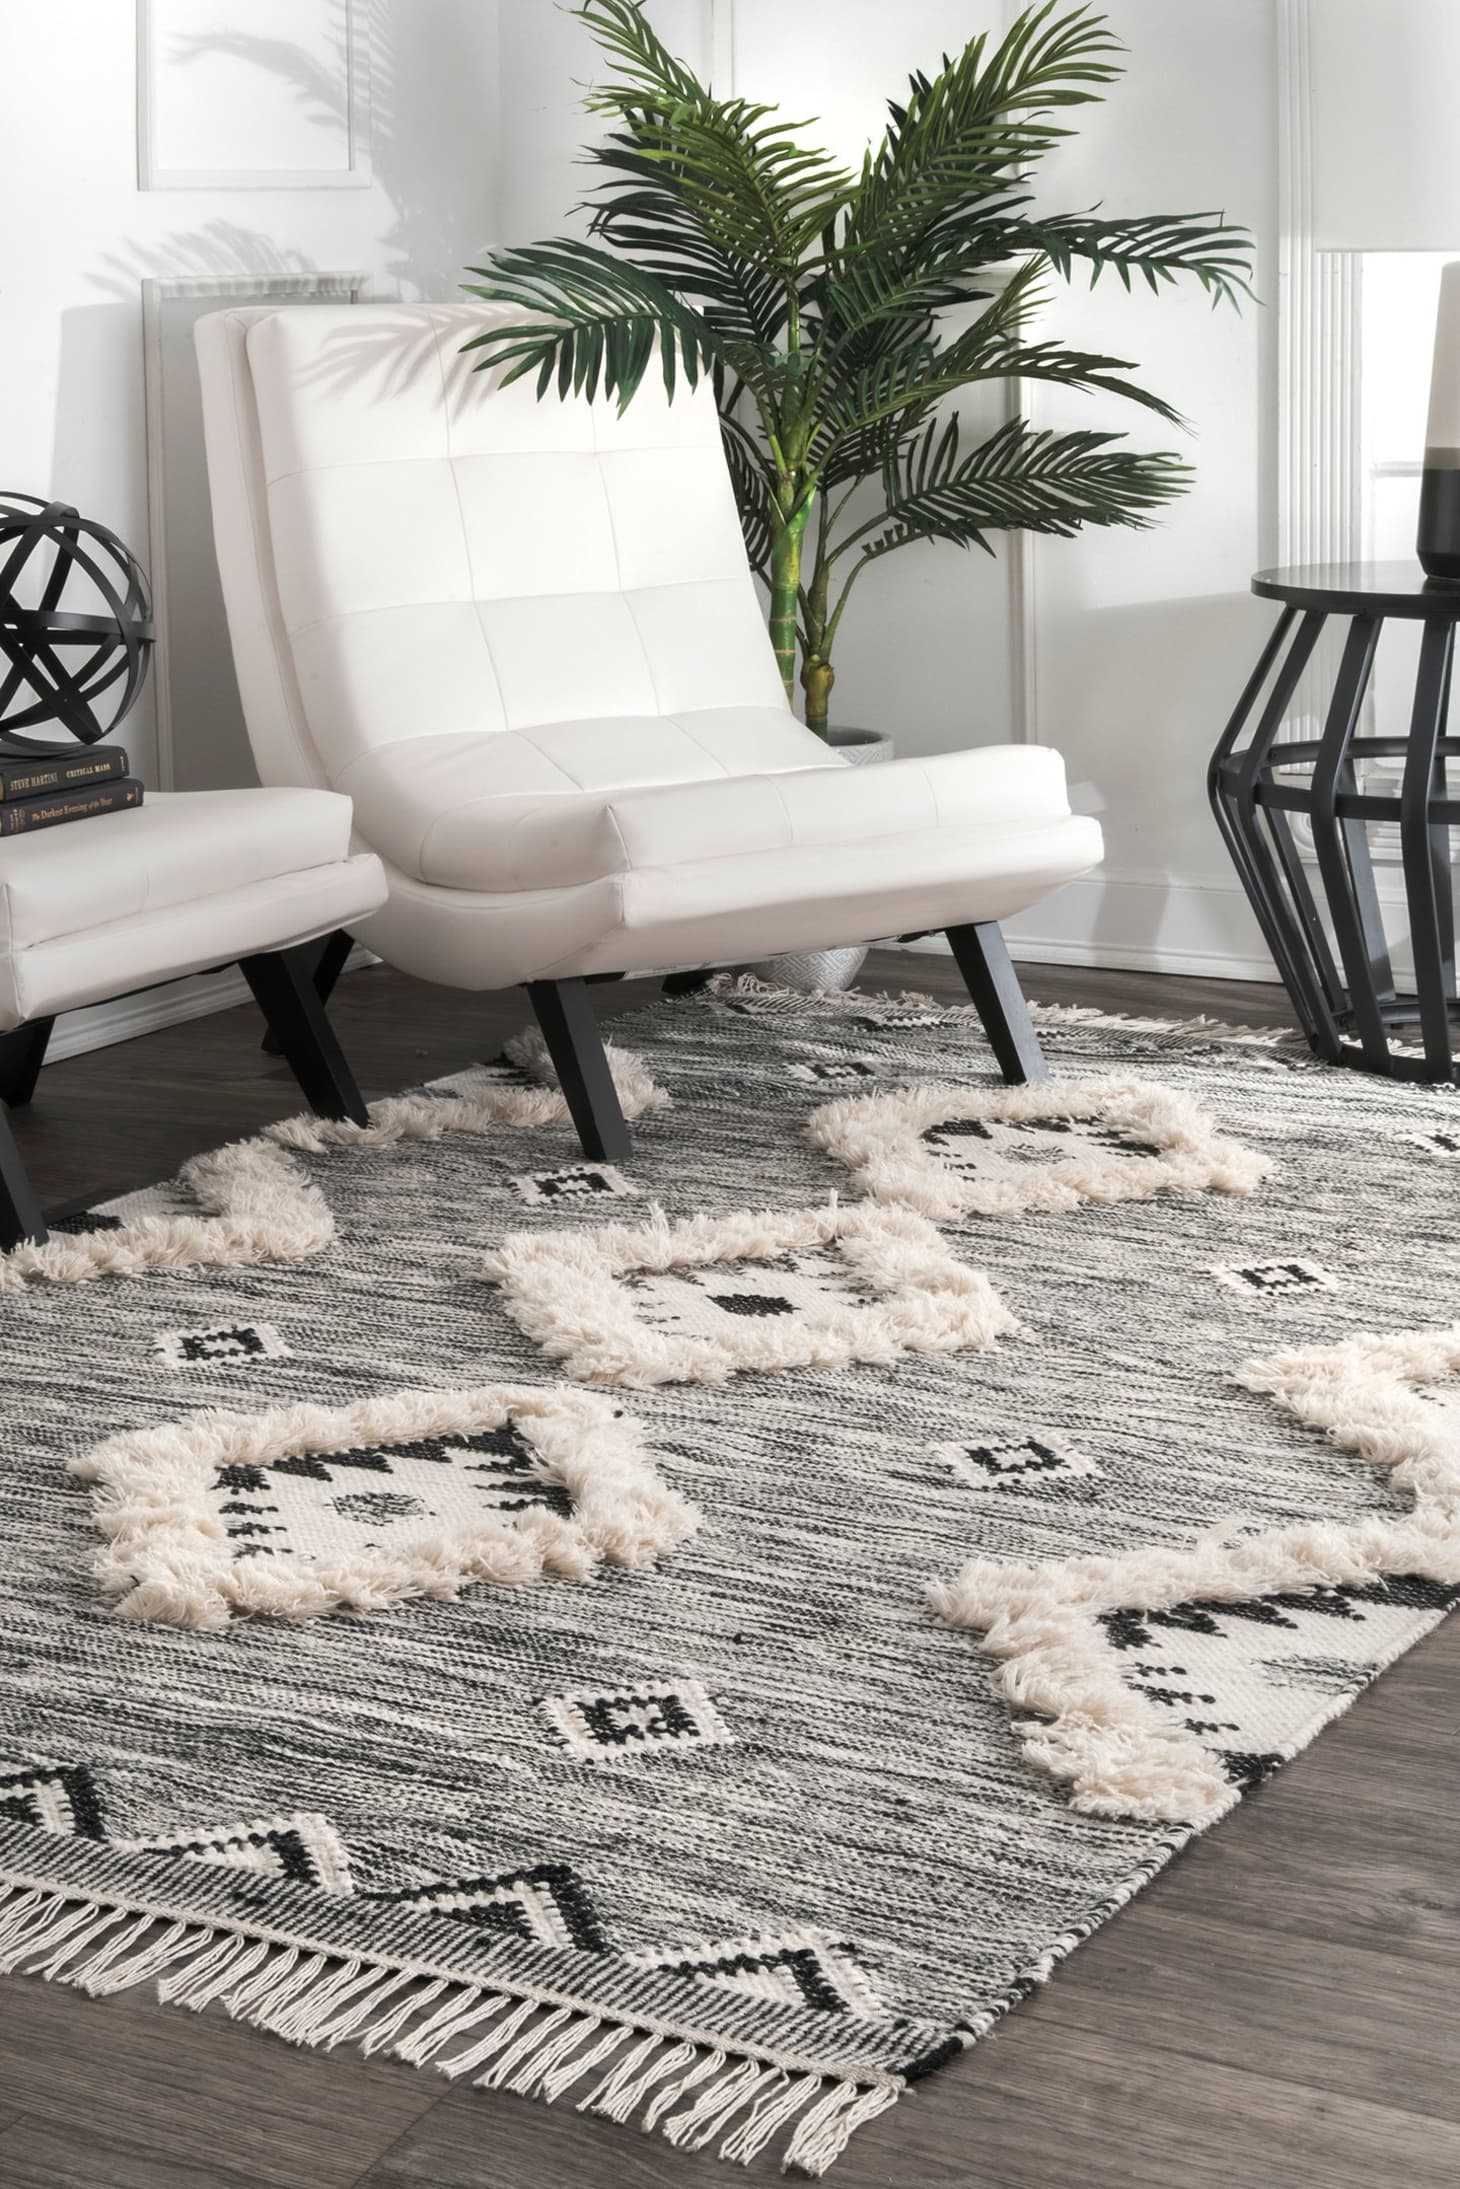 Rugsusa Summer Black Friday Sale Home Deals July 2019